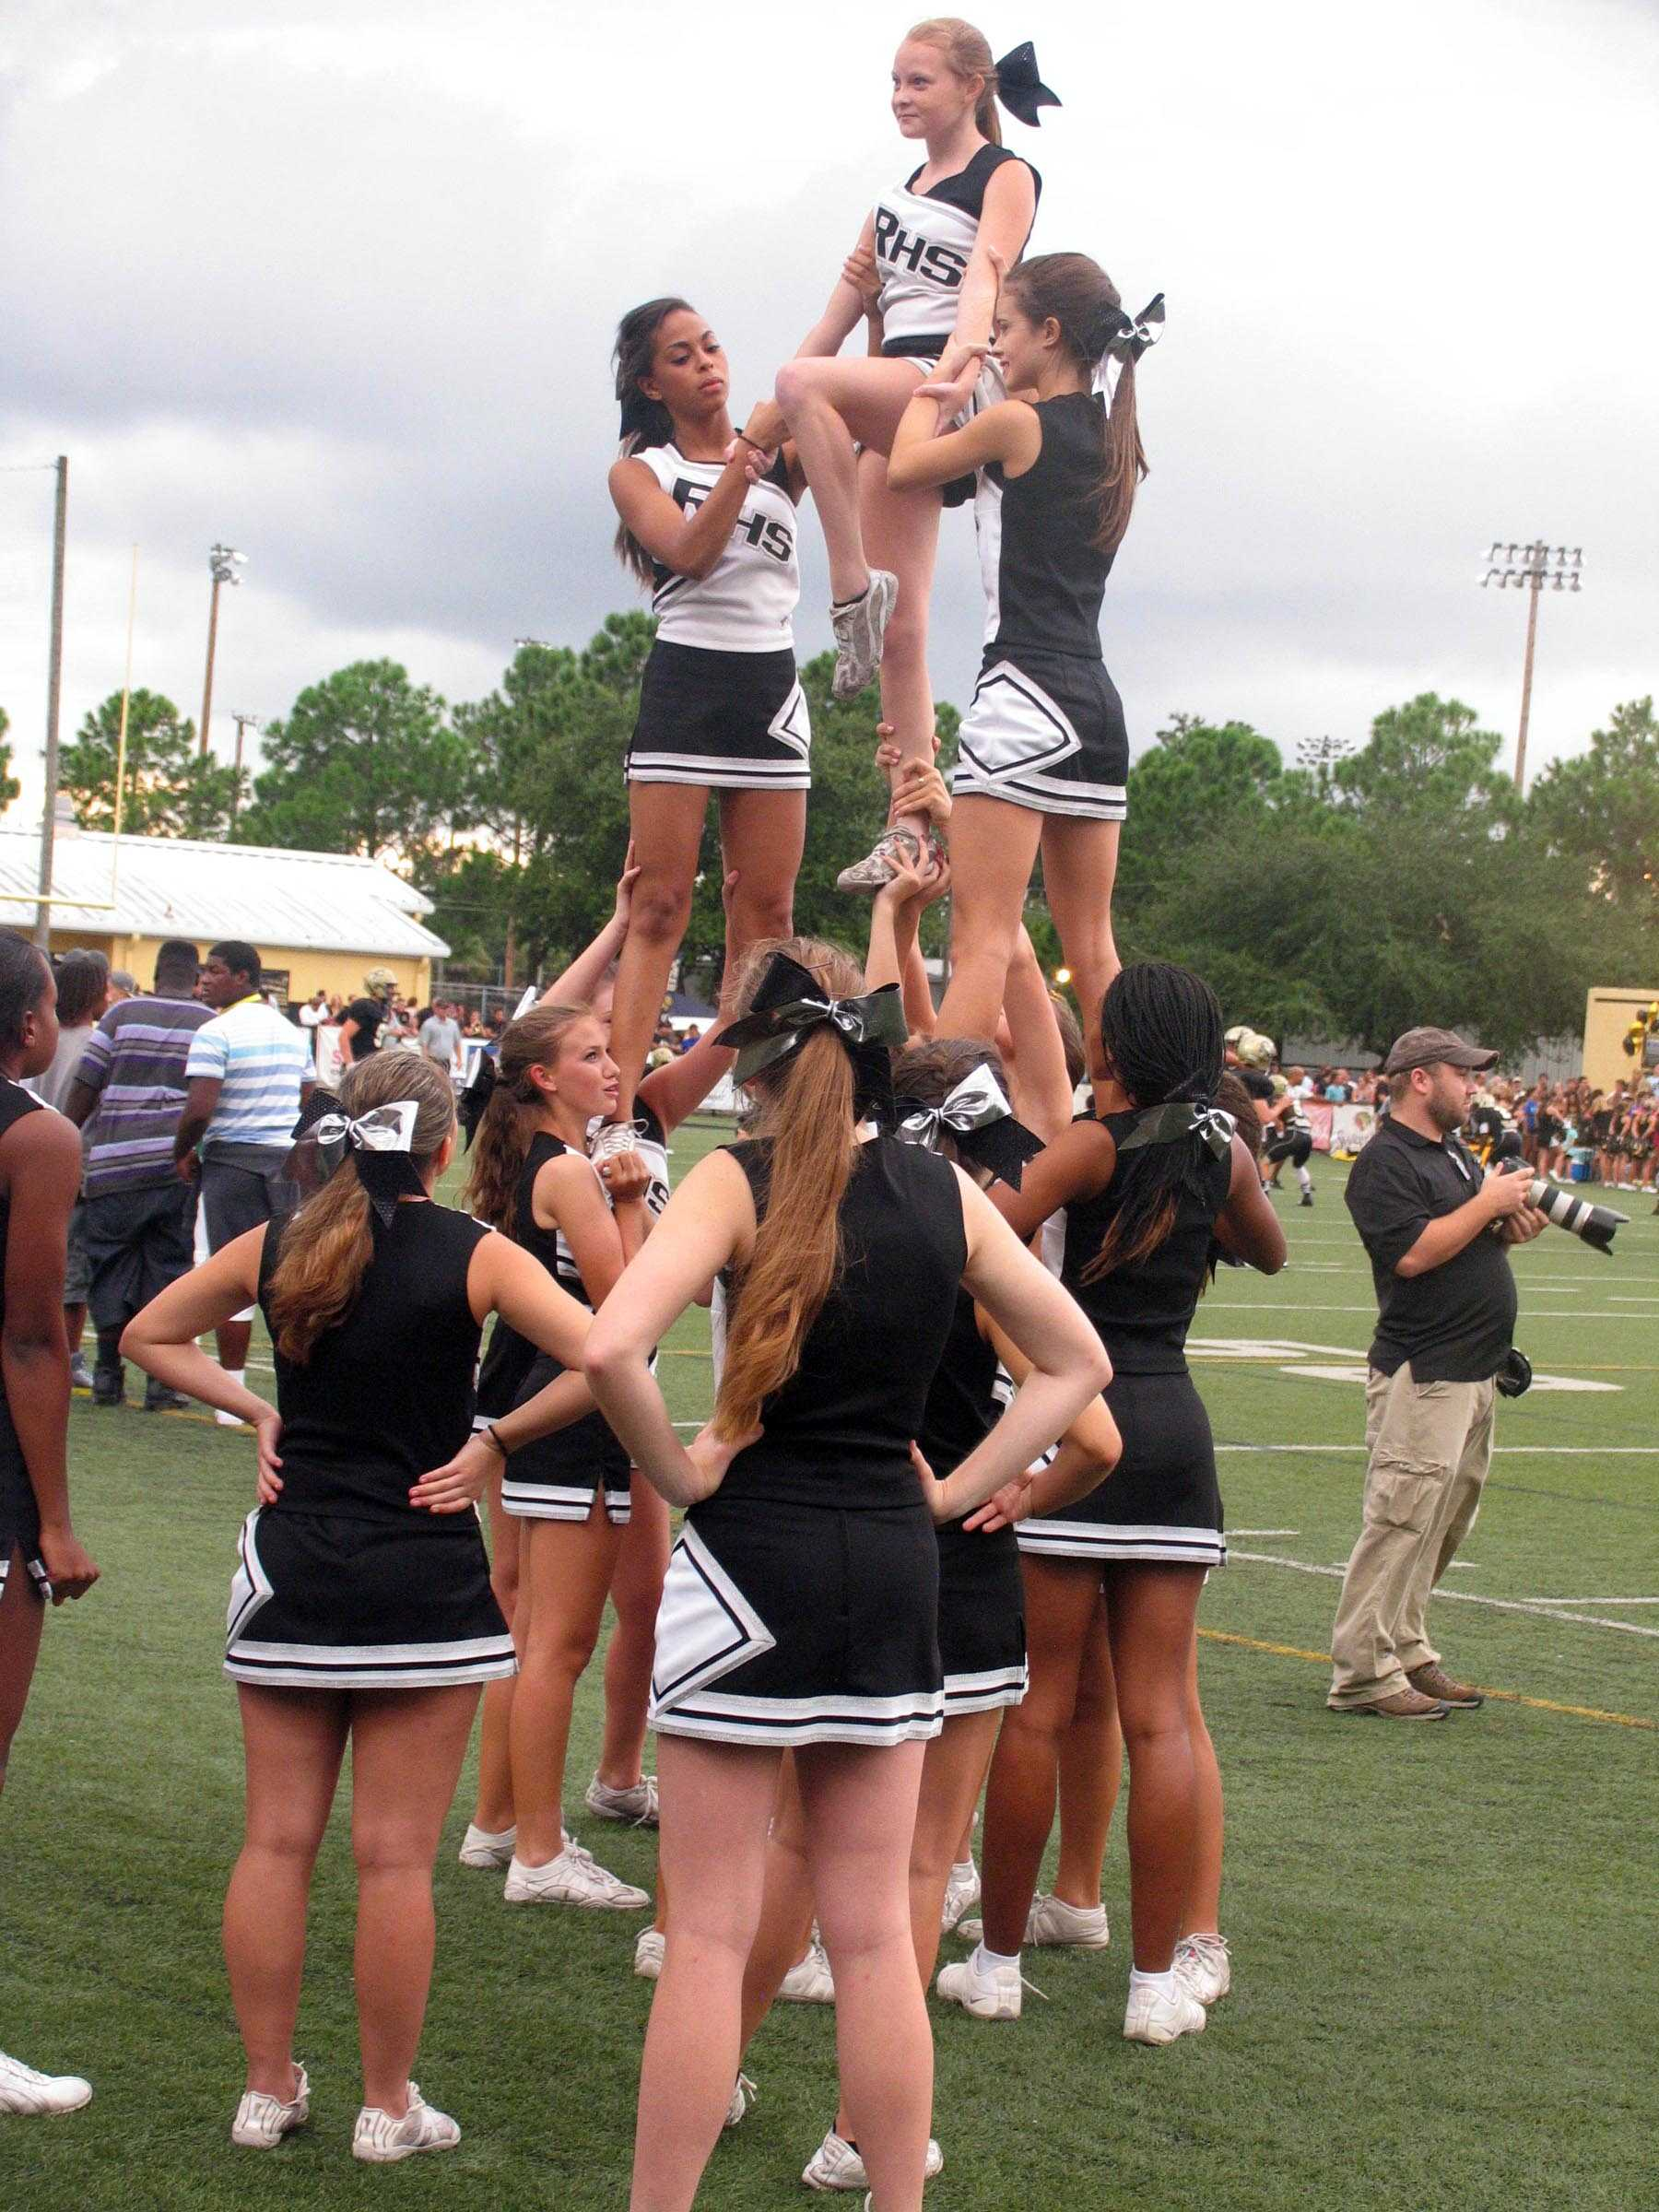 Rhs+cheerleaders+showing+pep+by+doing+stunts.+The+varsity+cheerleaders+are+a+made+up+of+seniors%2C+juniors+and+even+sophmores.